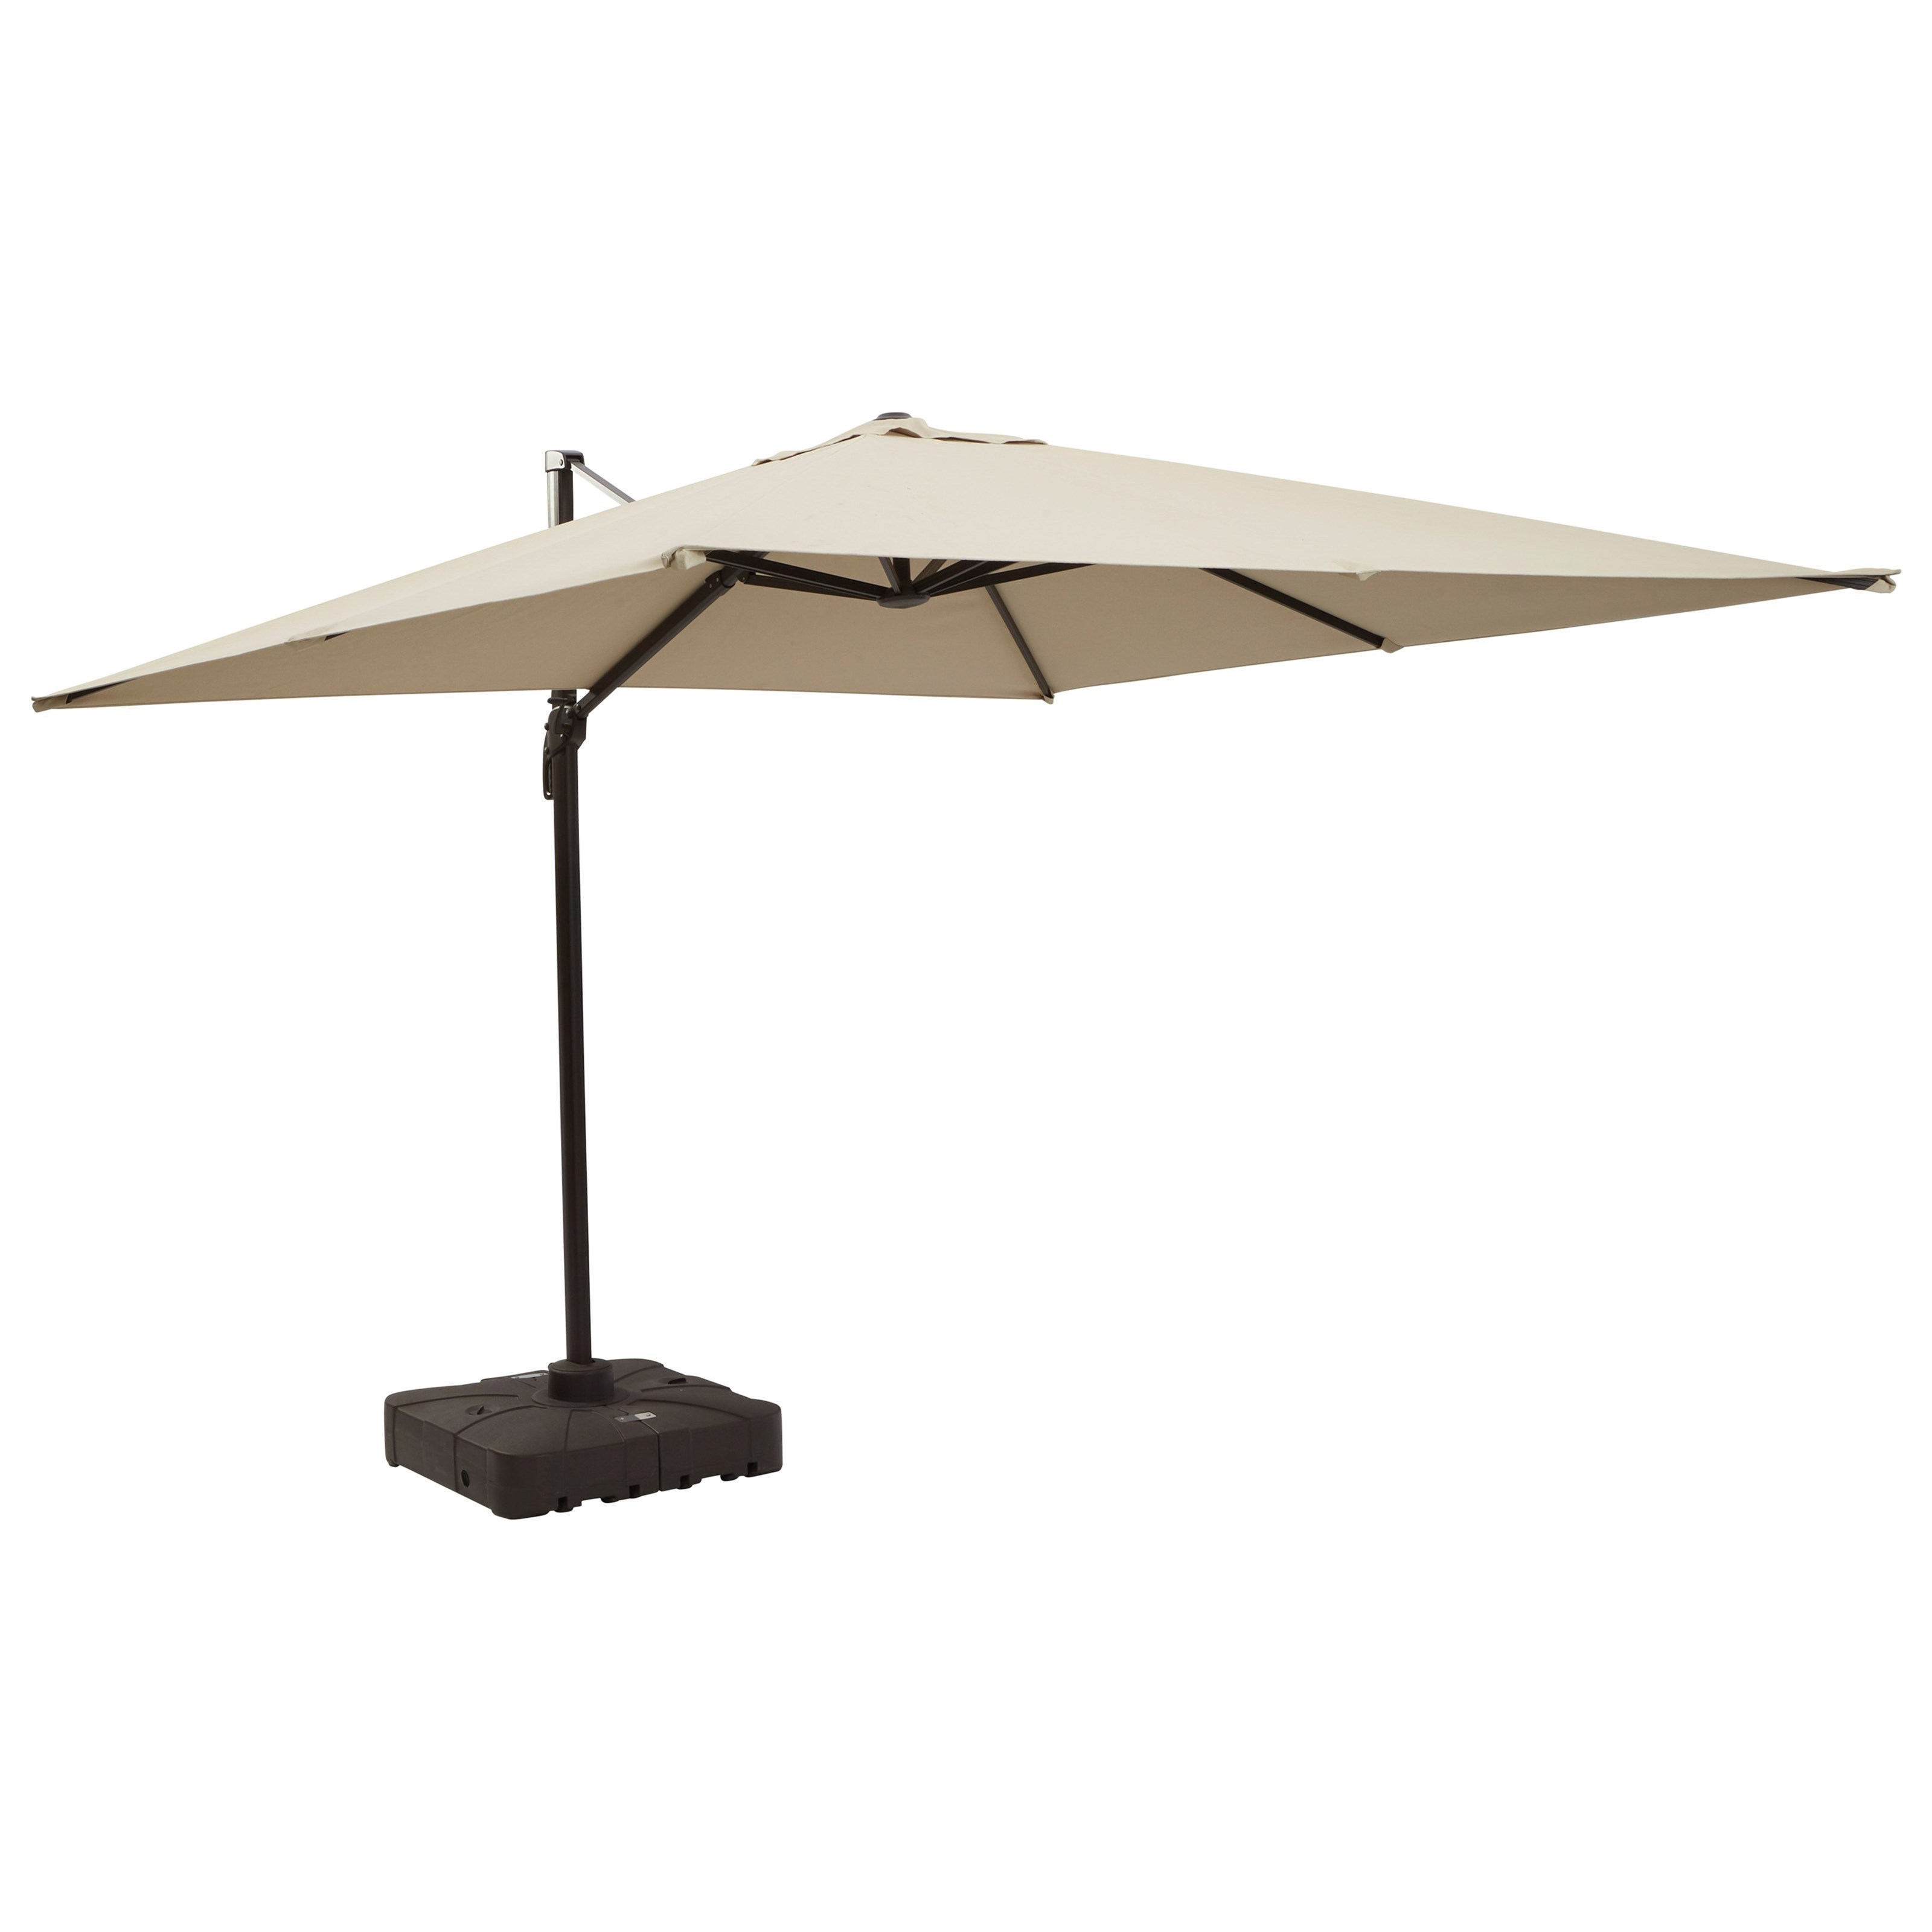 Large Cantilever Umbrella & Base